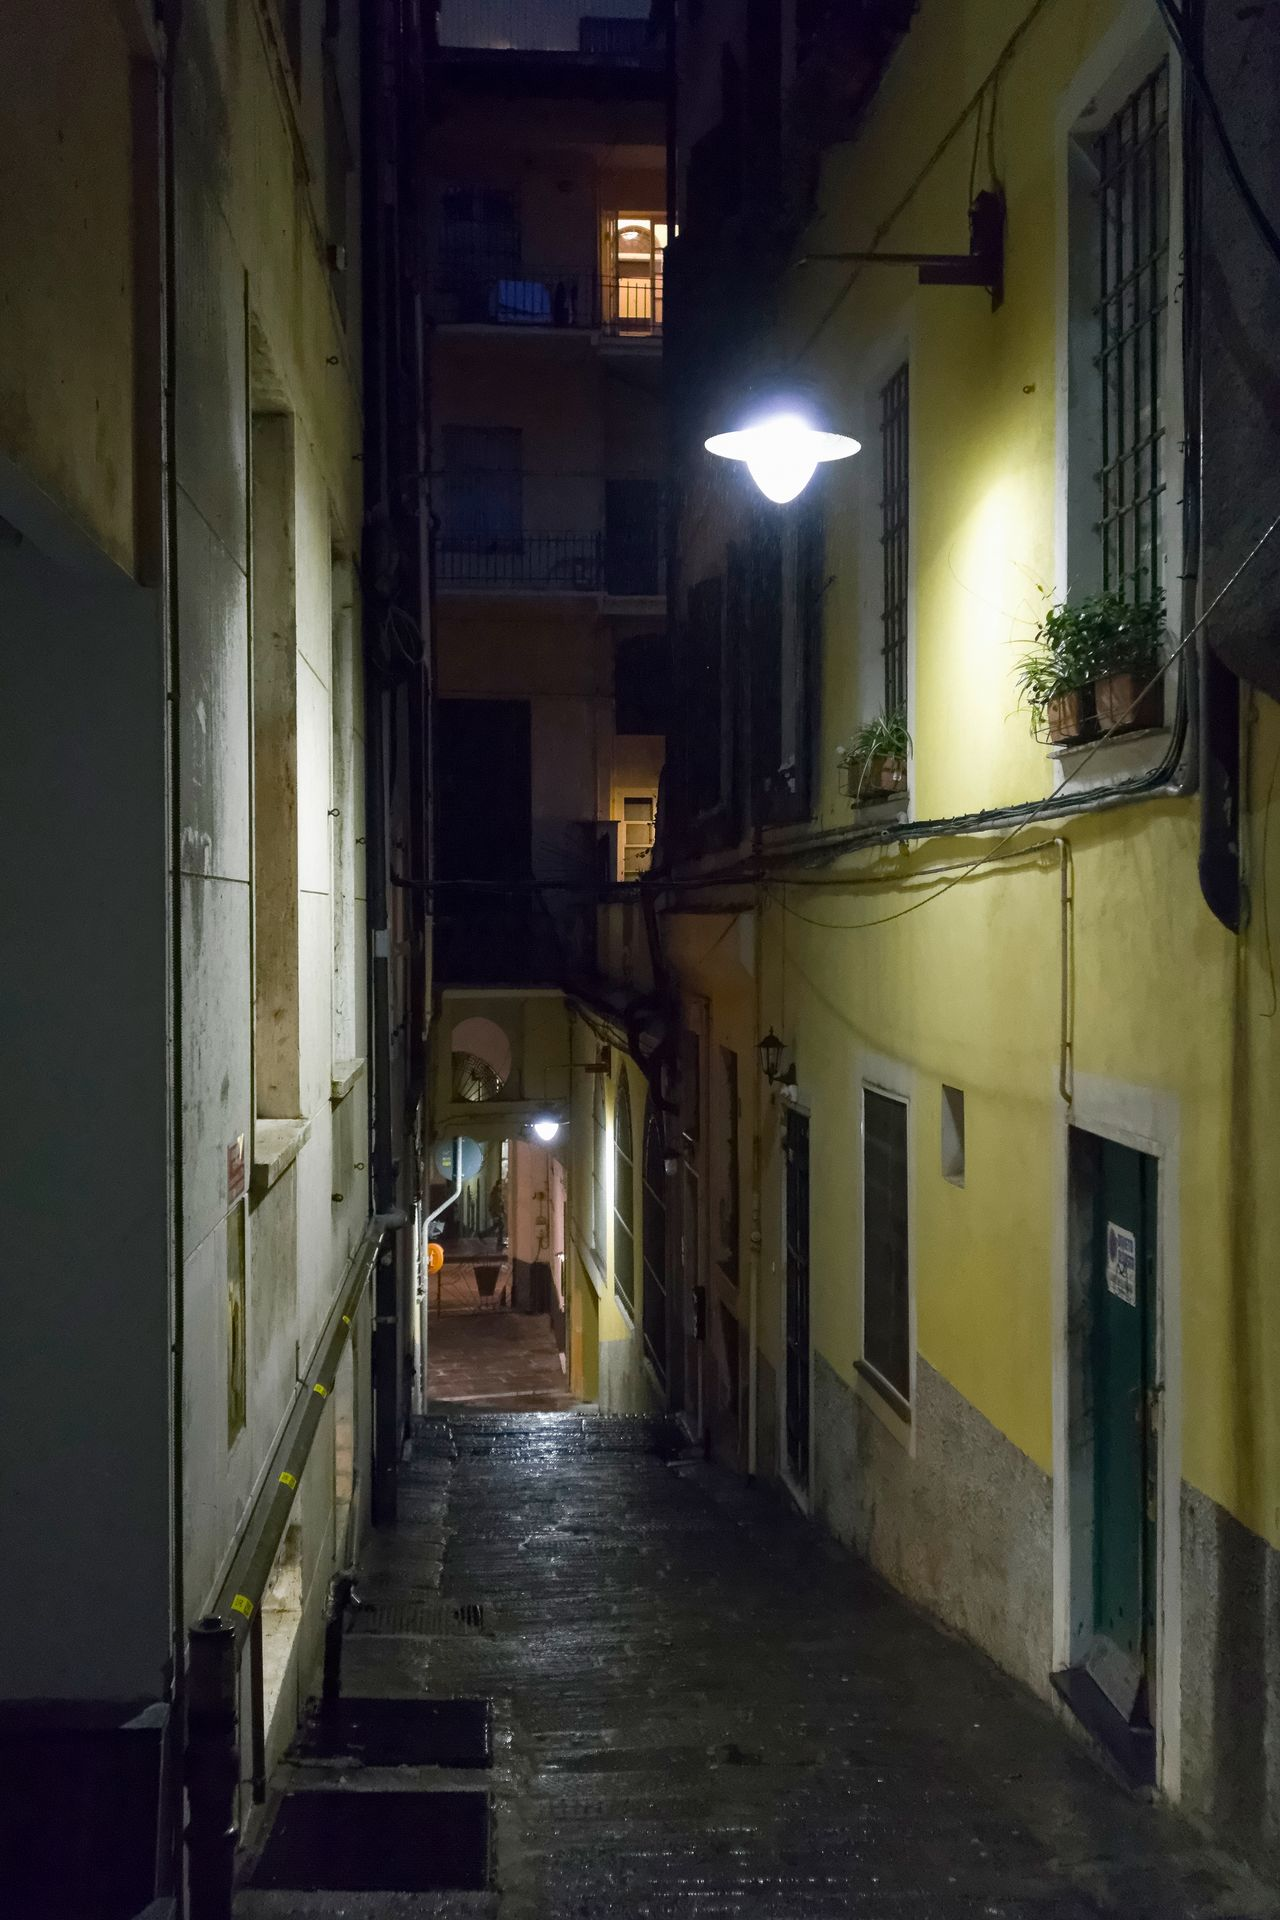 Alley Architecture Building Exterior Built Structure House Illuminated Night No People Outdoors Walkway